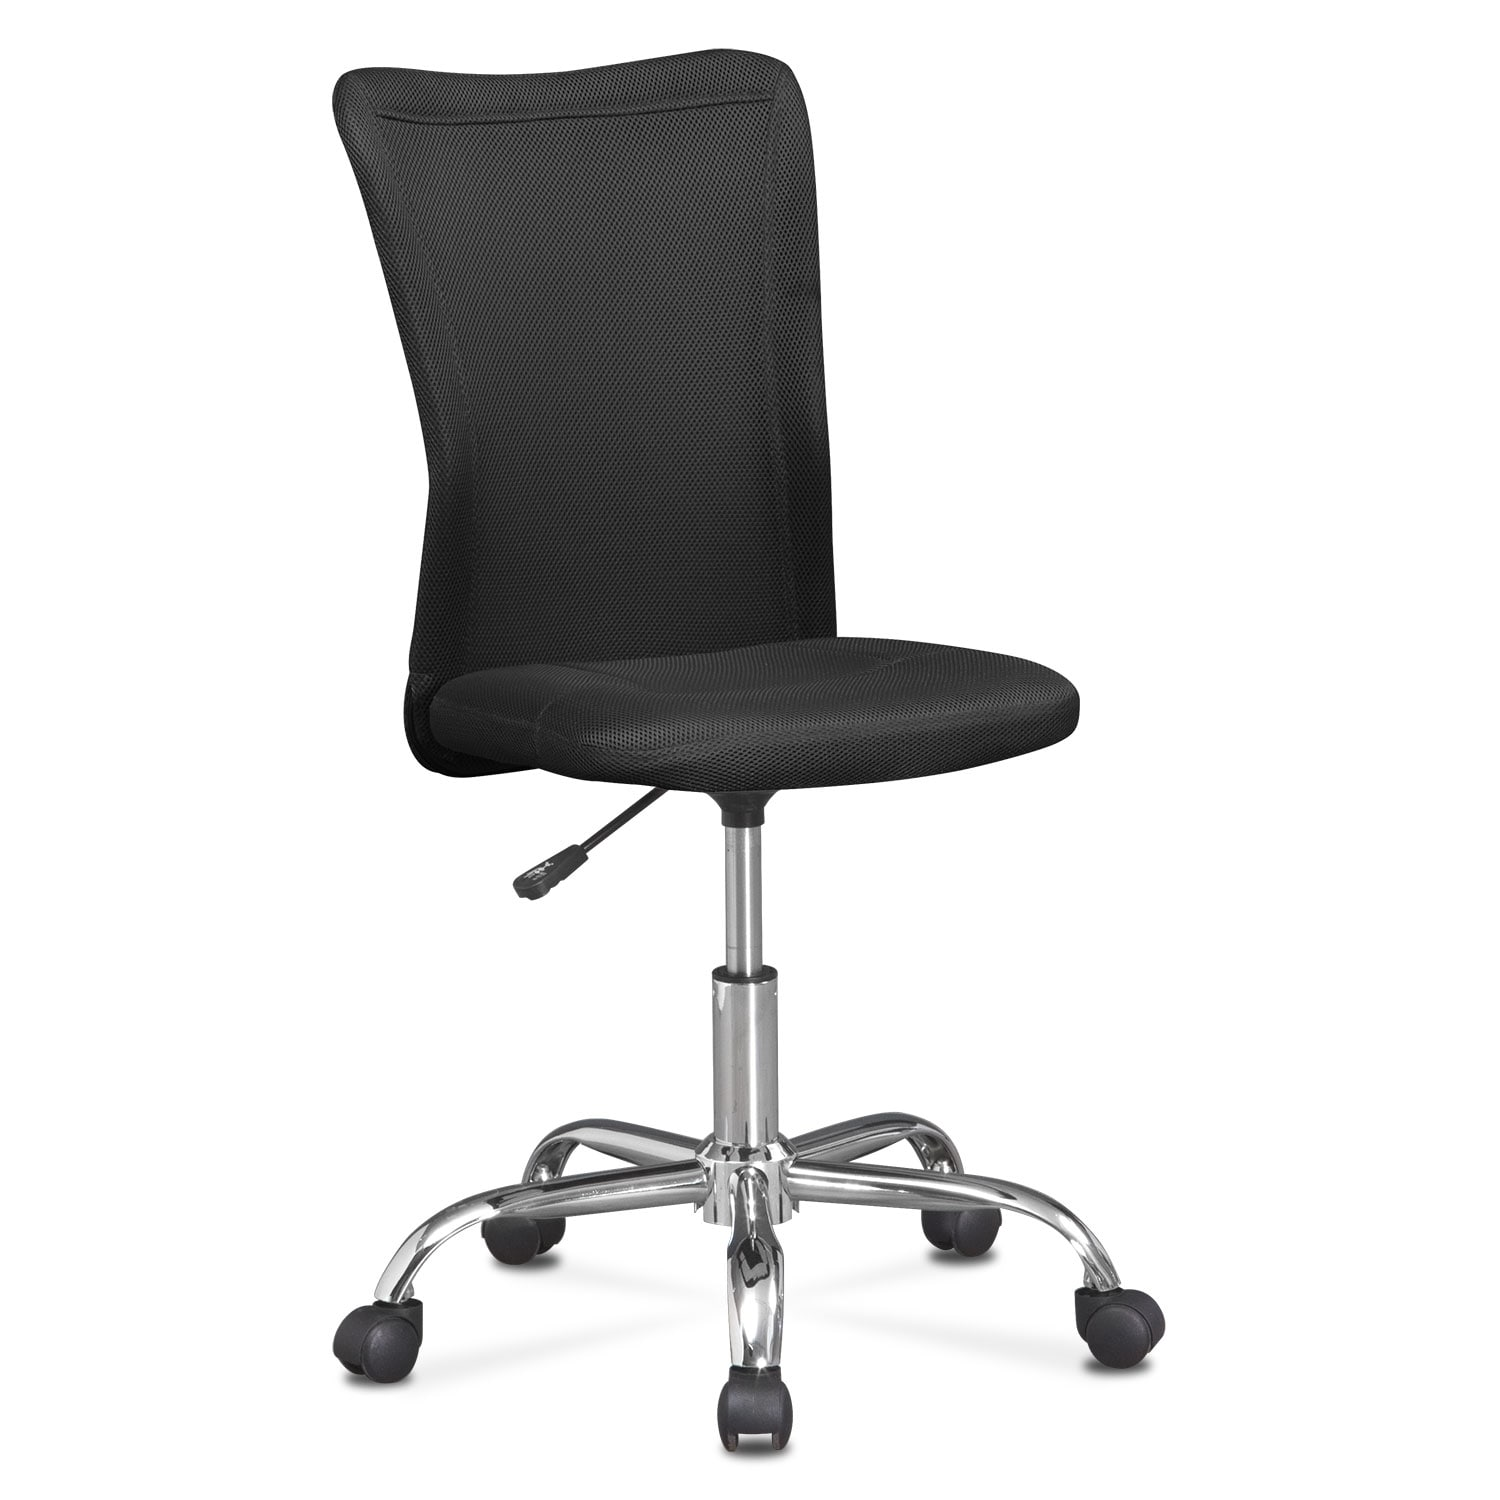 Mist Desk Chair - Black